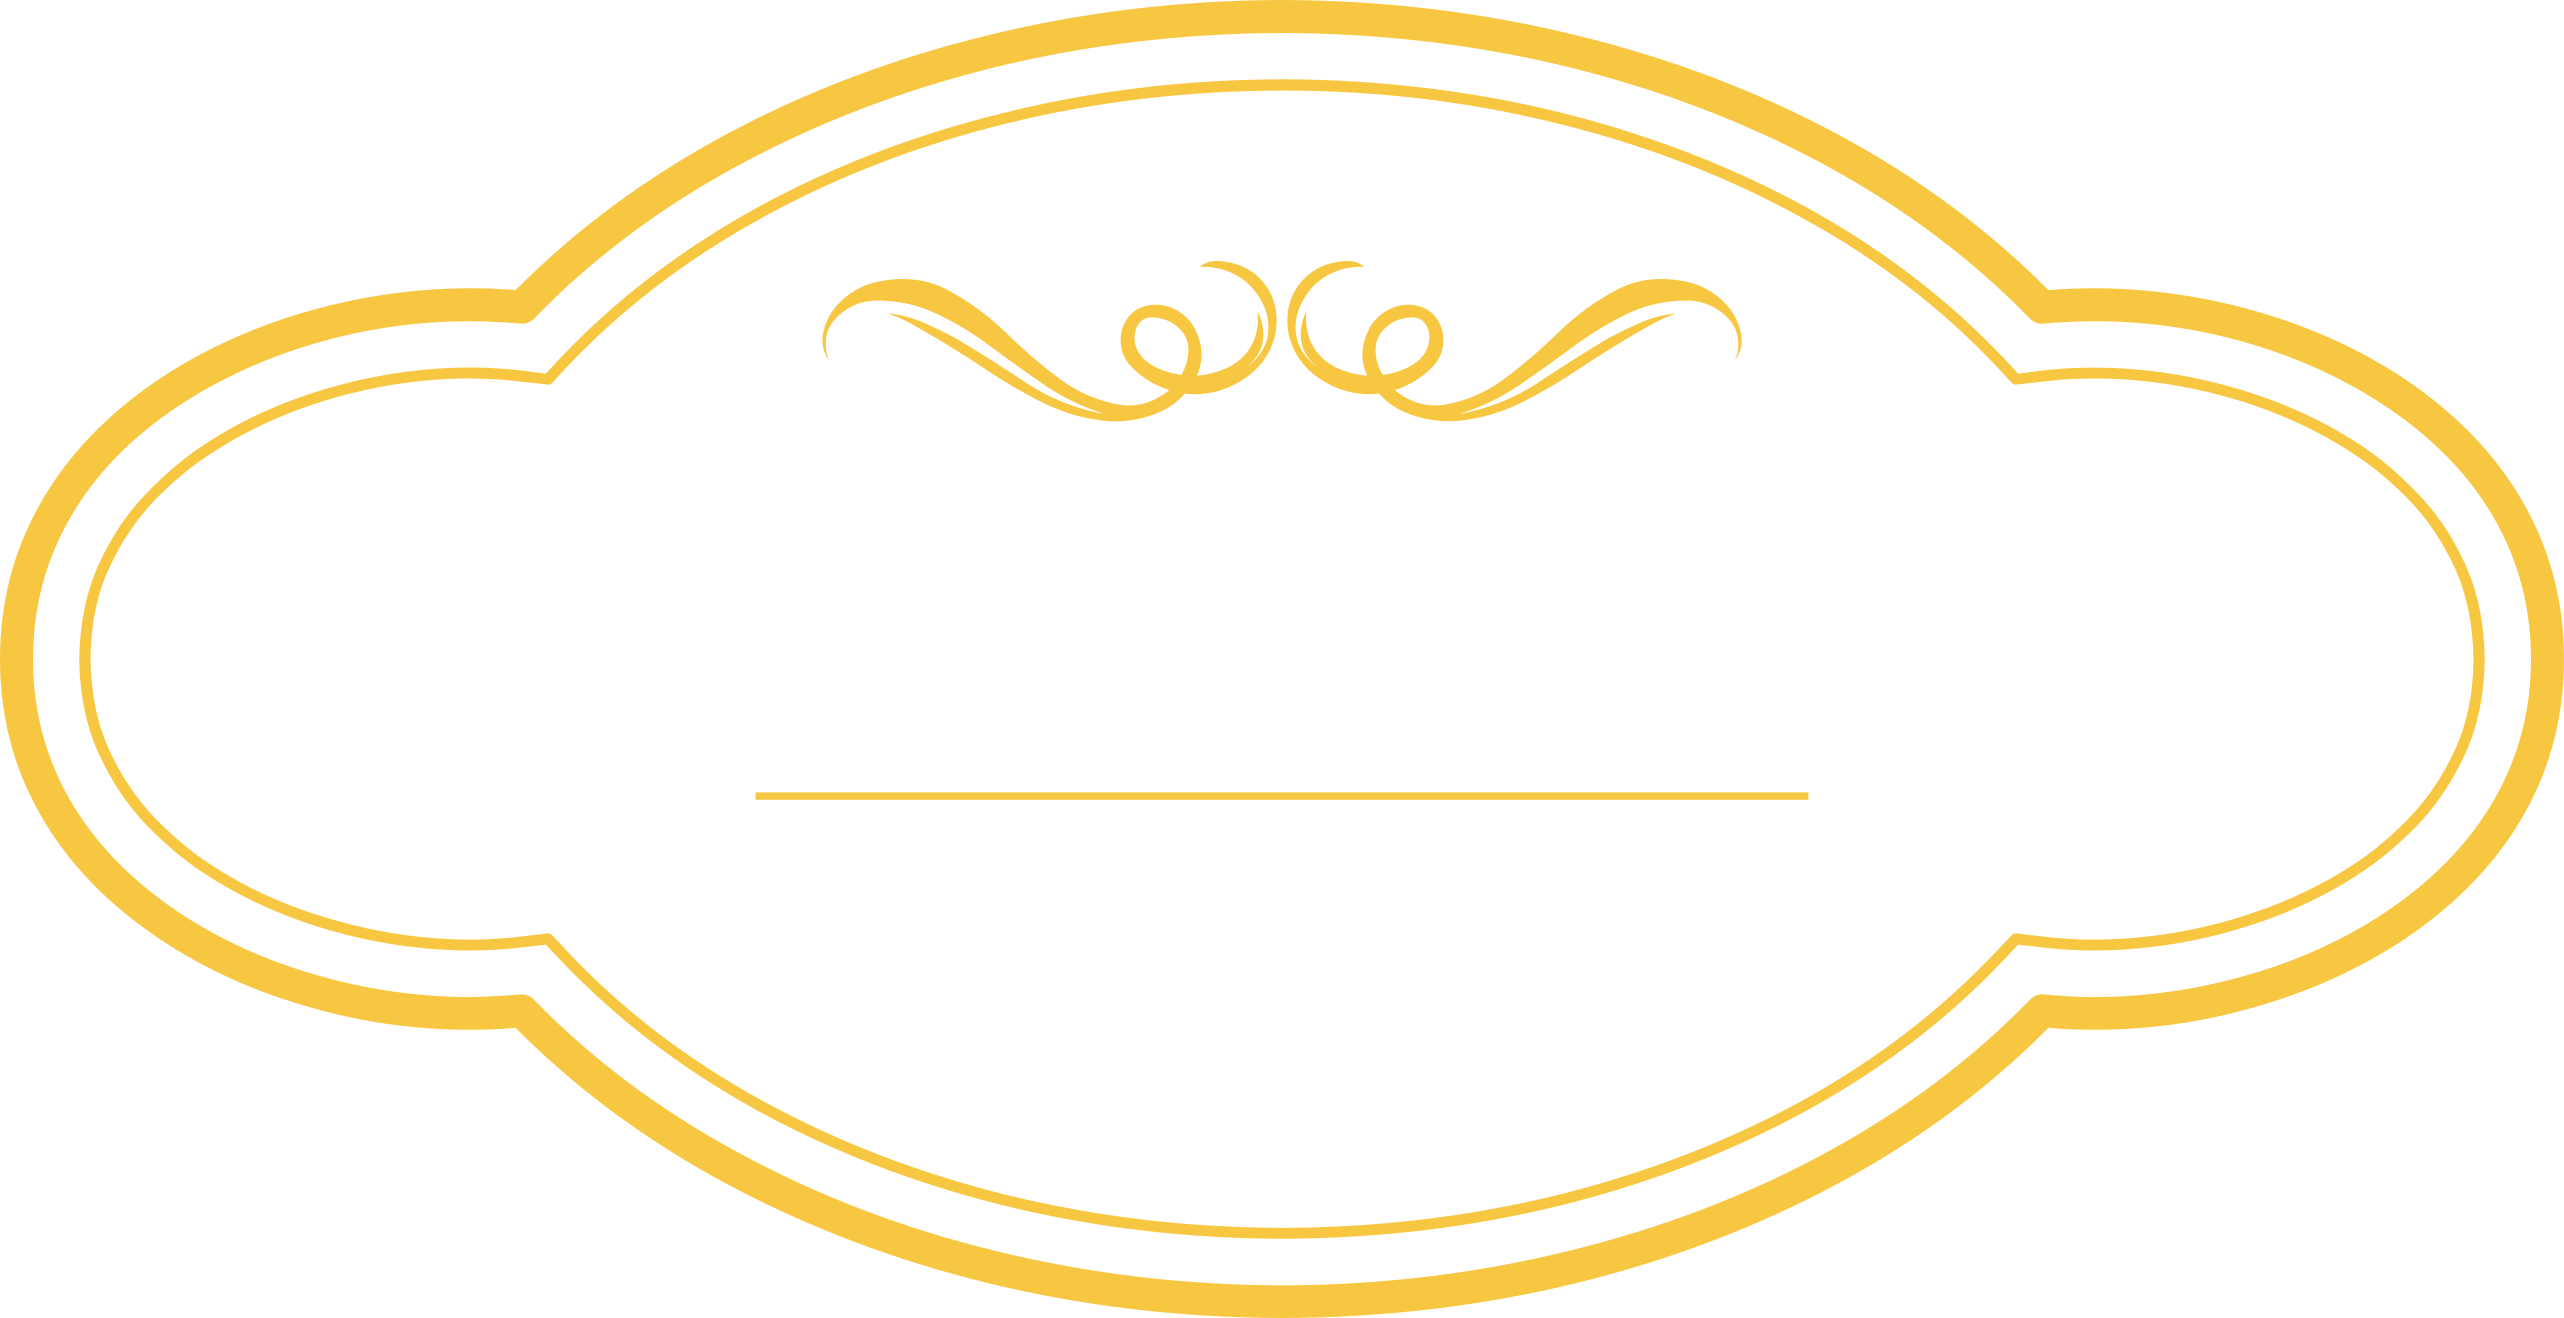 SSI Audio Visual Rentals